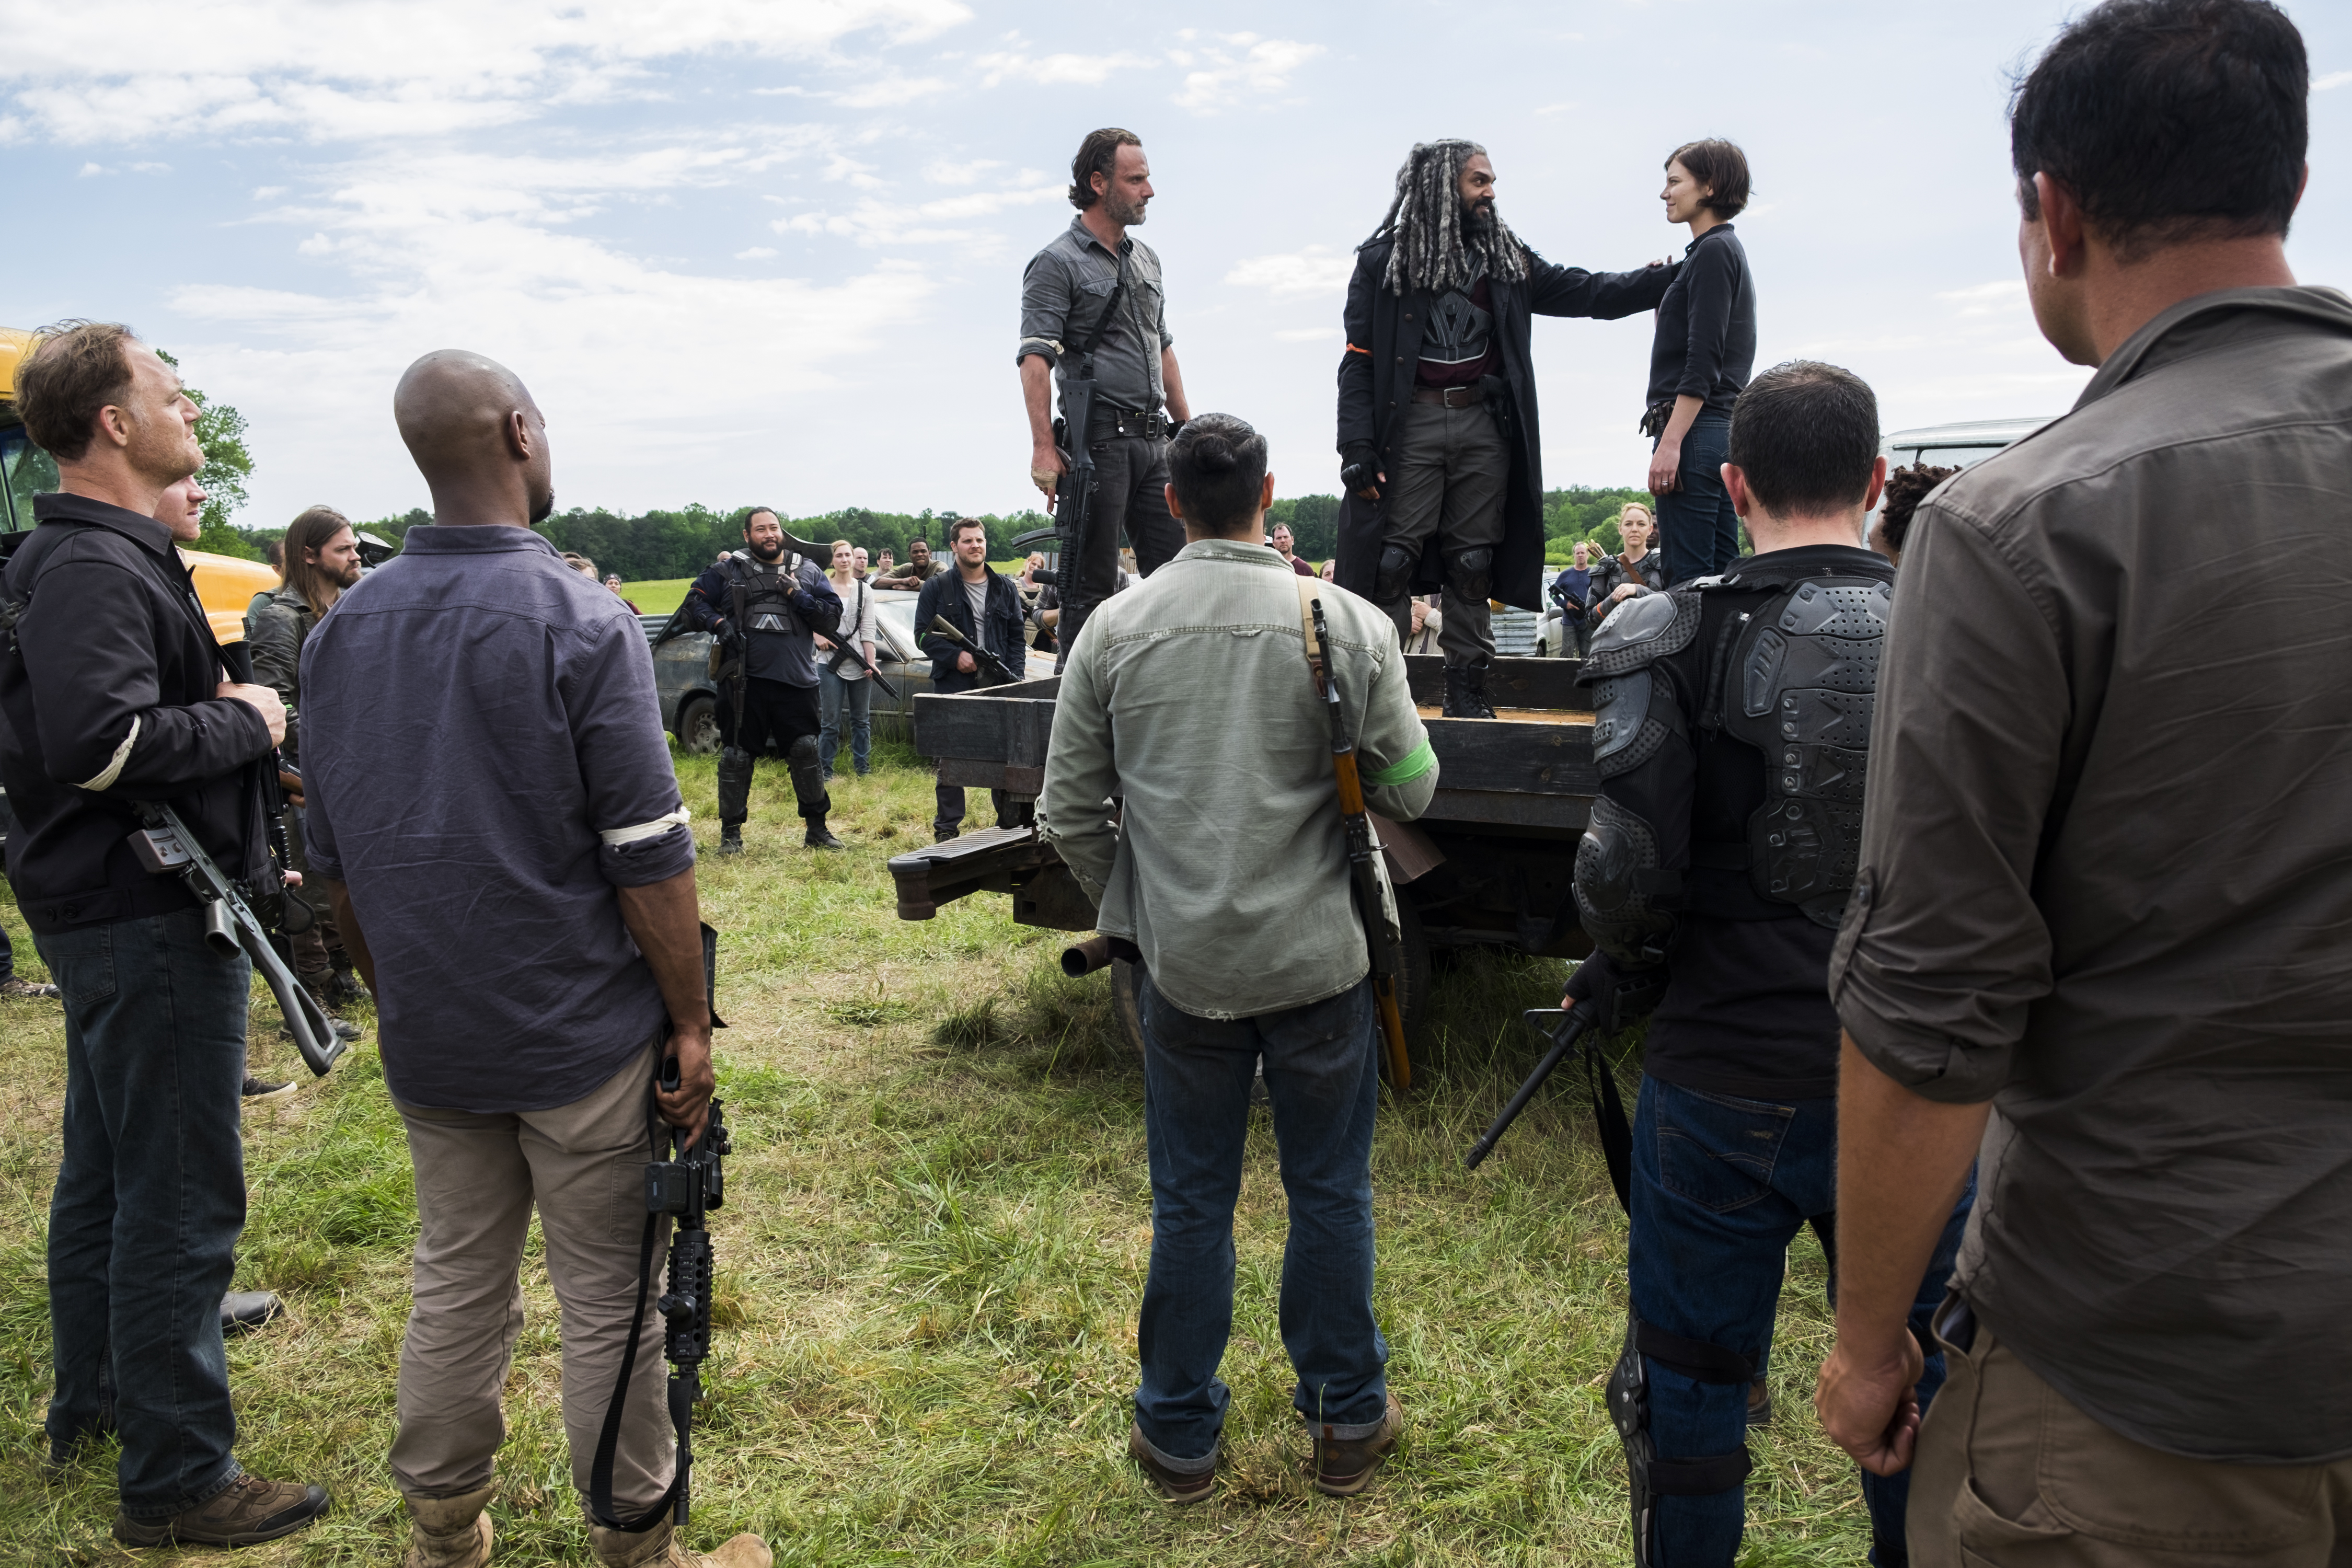 review-the-walking-dead-s08e01-mercy-004